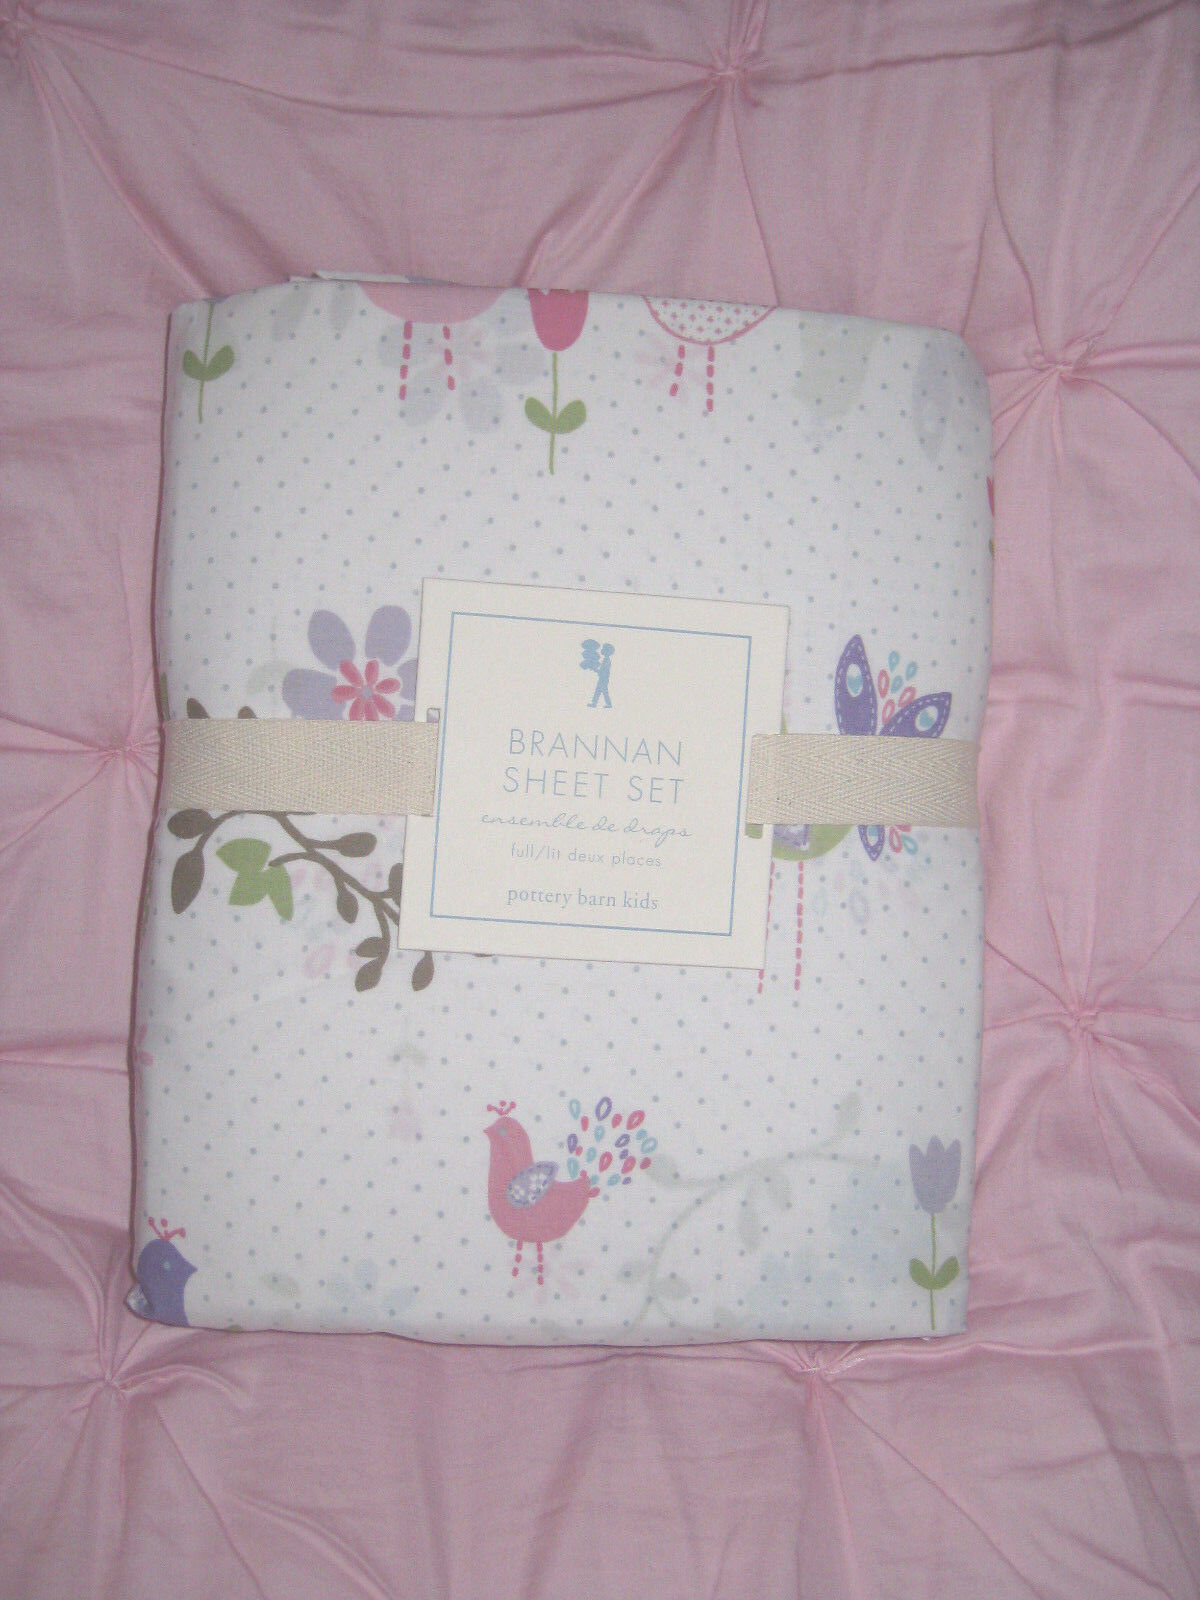 Nouveau POTTERY BARN Kids Brannan Fleur Lavande Bird FULL SHEET SET rare à trouver